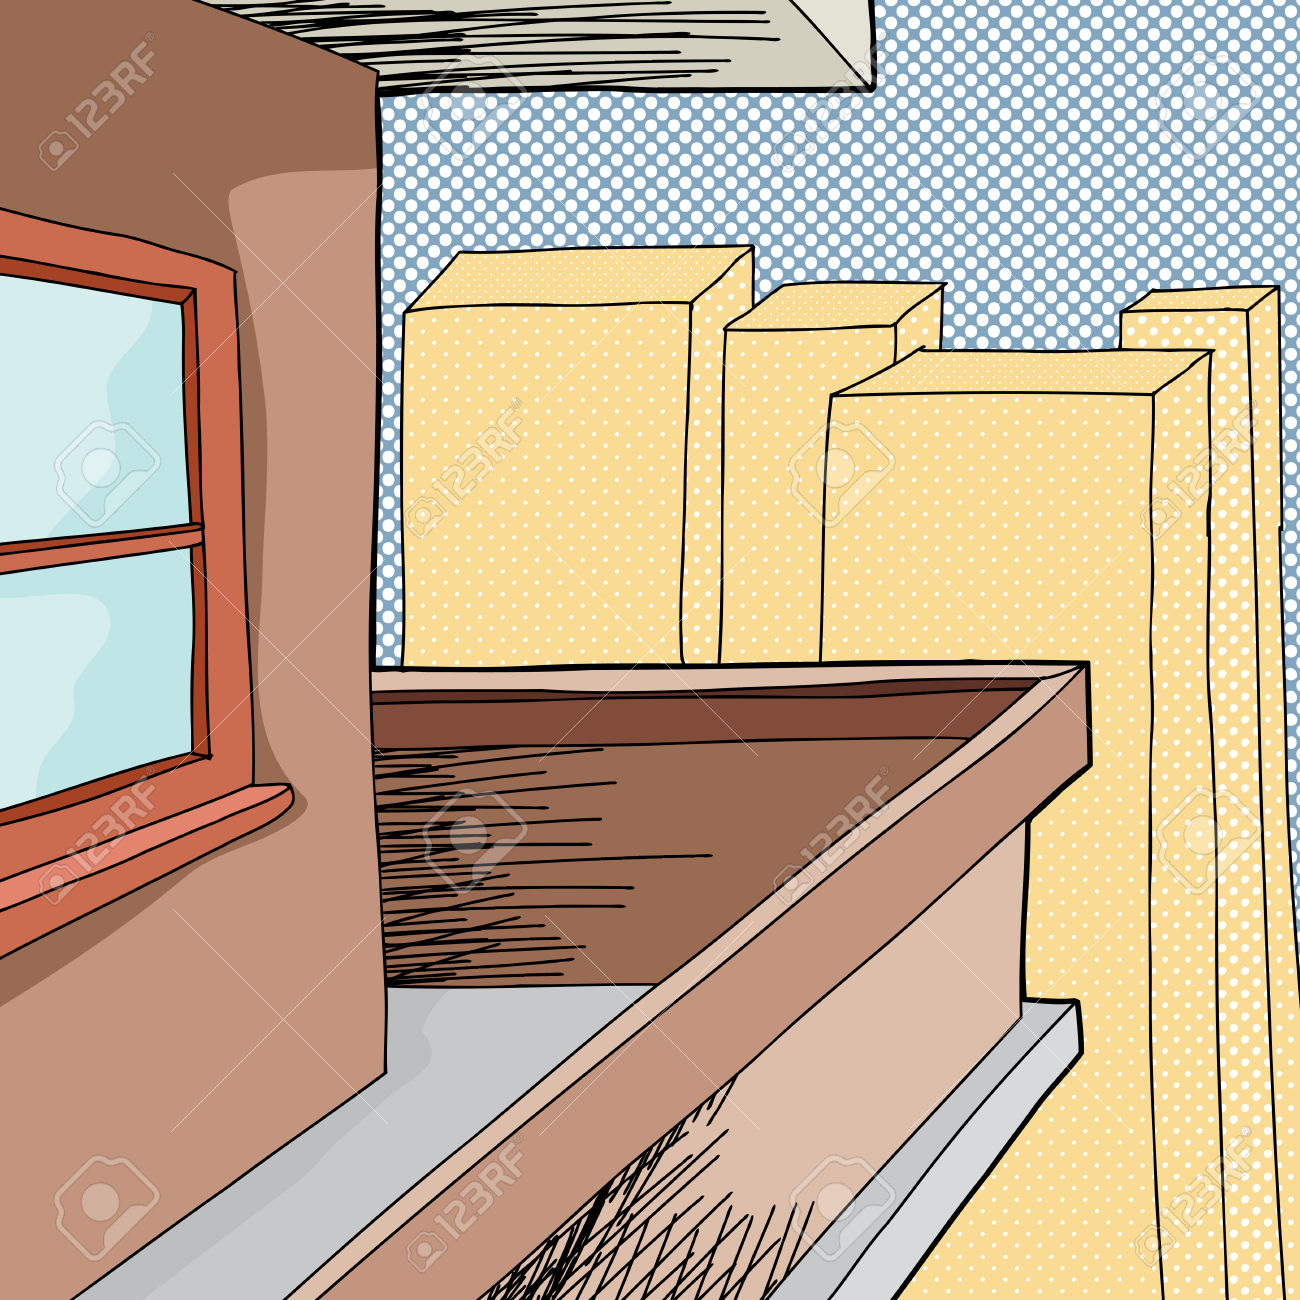 Cartoon Balcony On Apartment With Halftone Background Royalty Free.